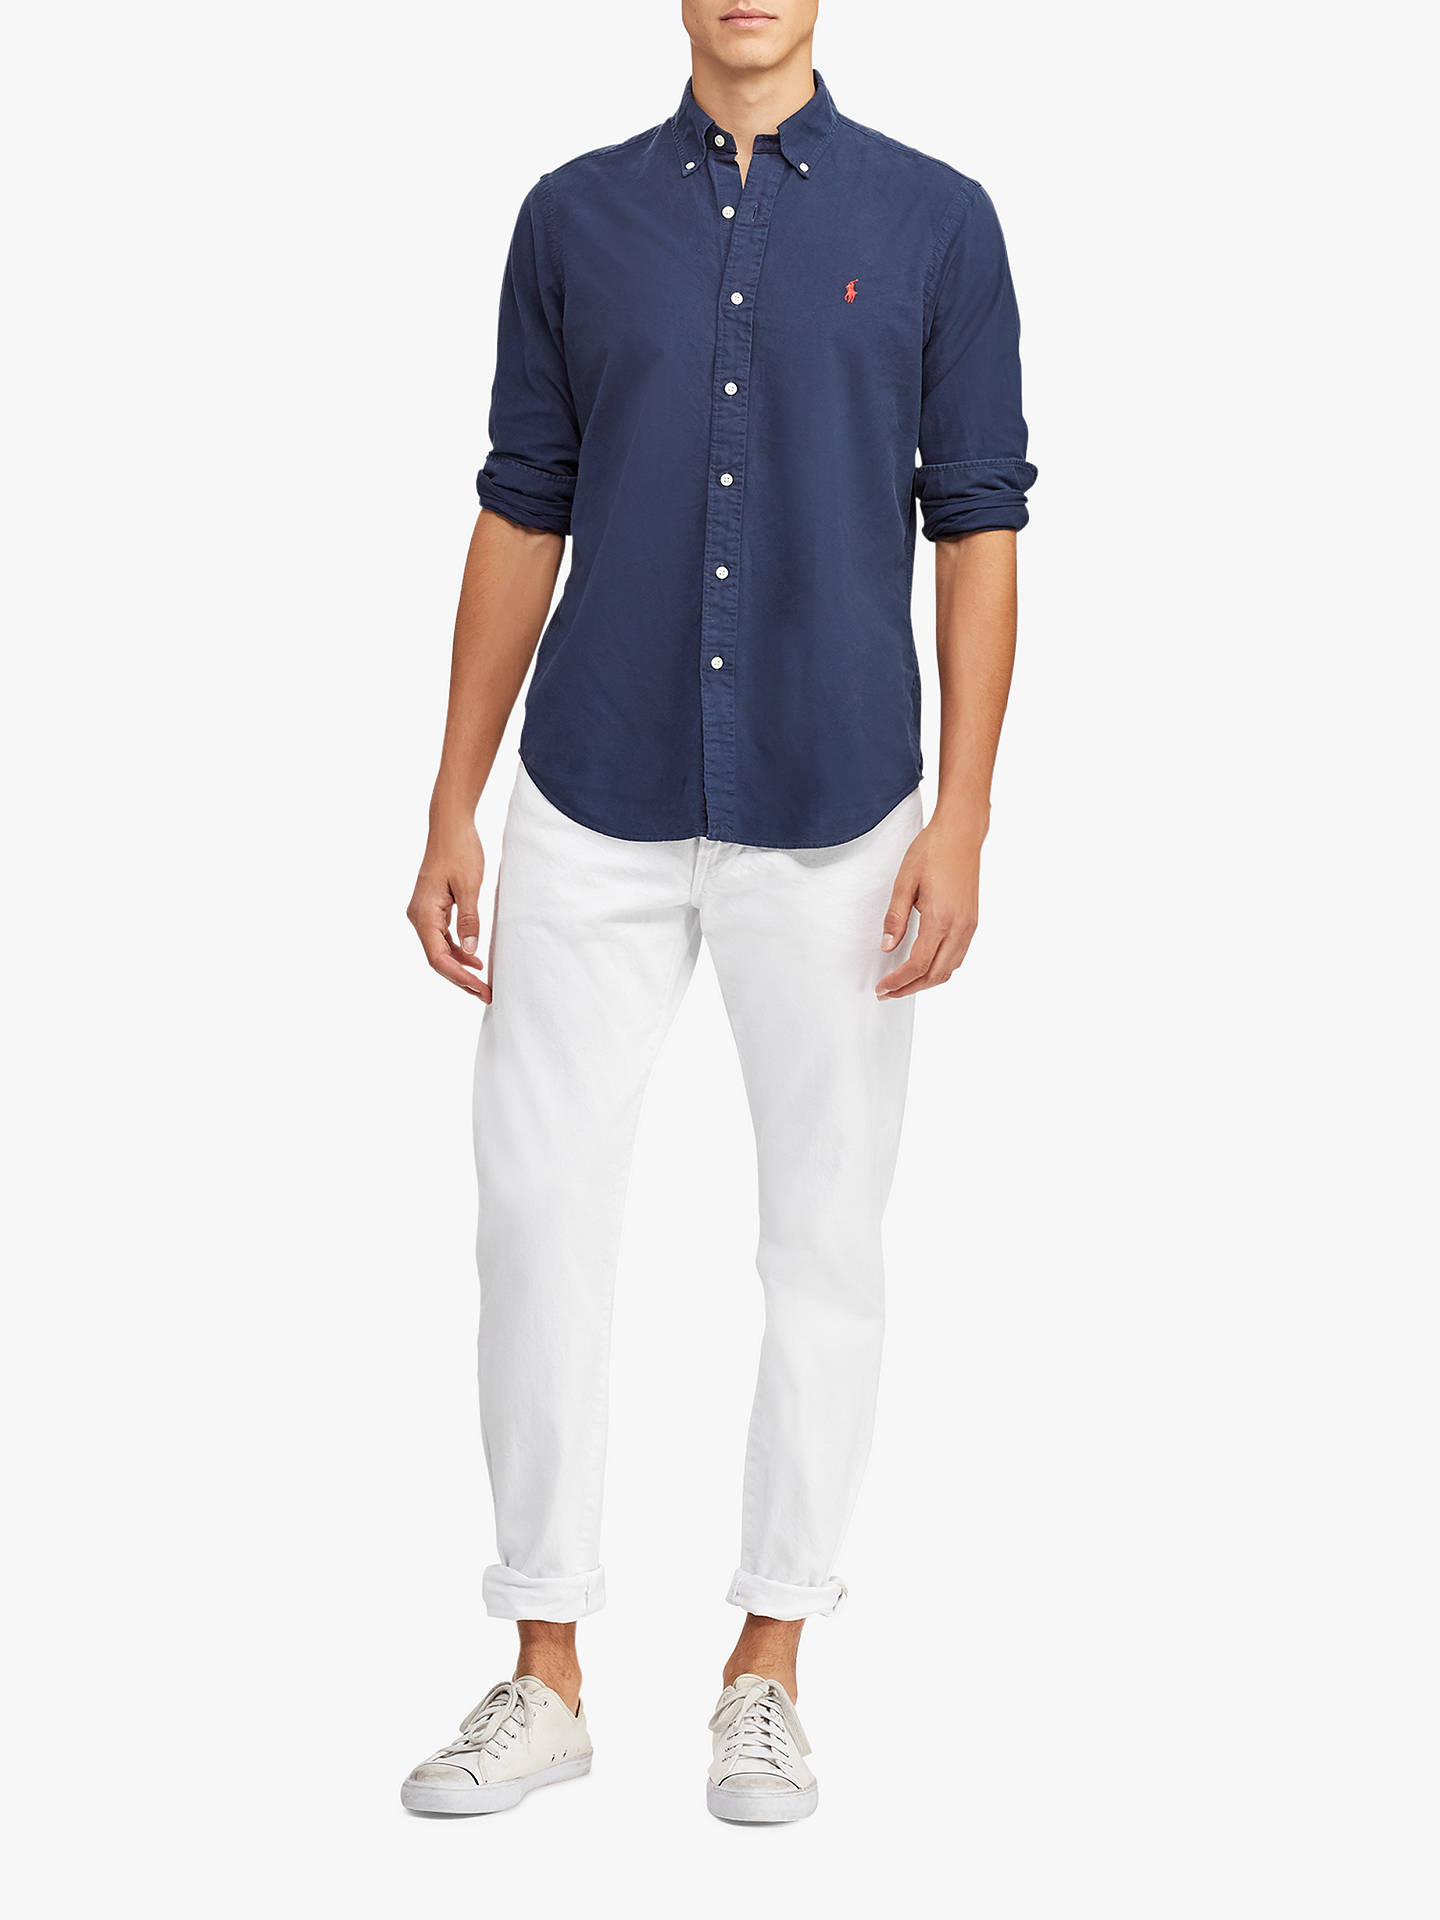 Buy Polo Ralph Lauren Long Sleeve Slim Fit  Button Down Shirt, Navy, M Online at johnlewis.com